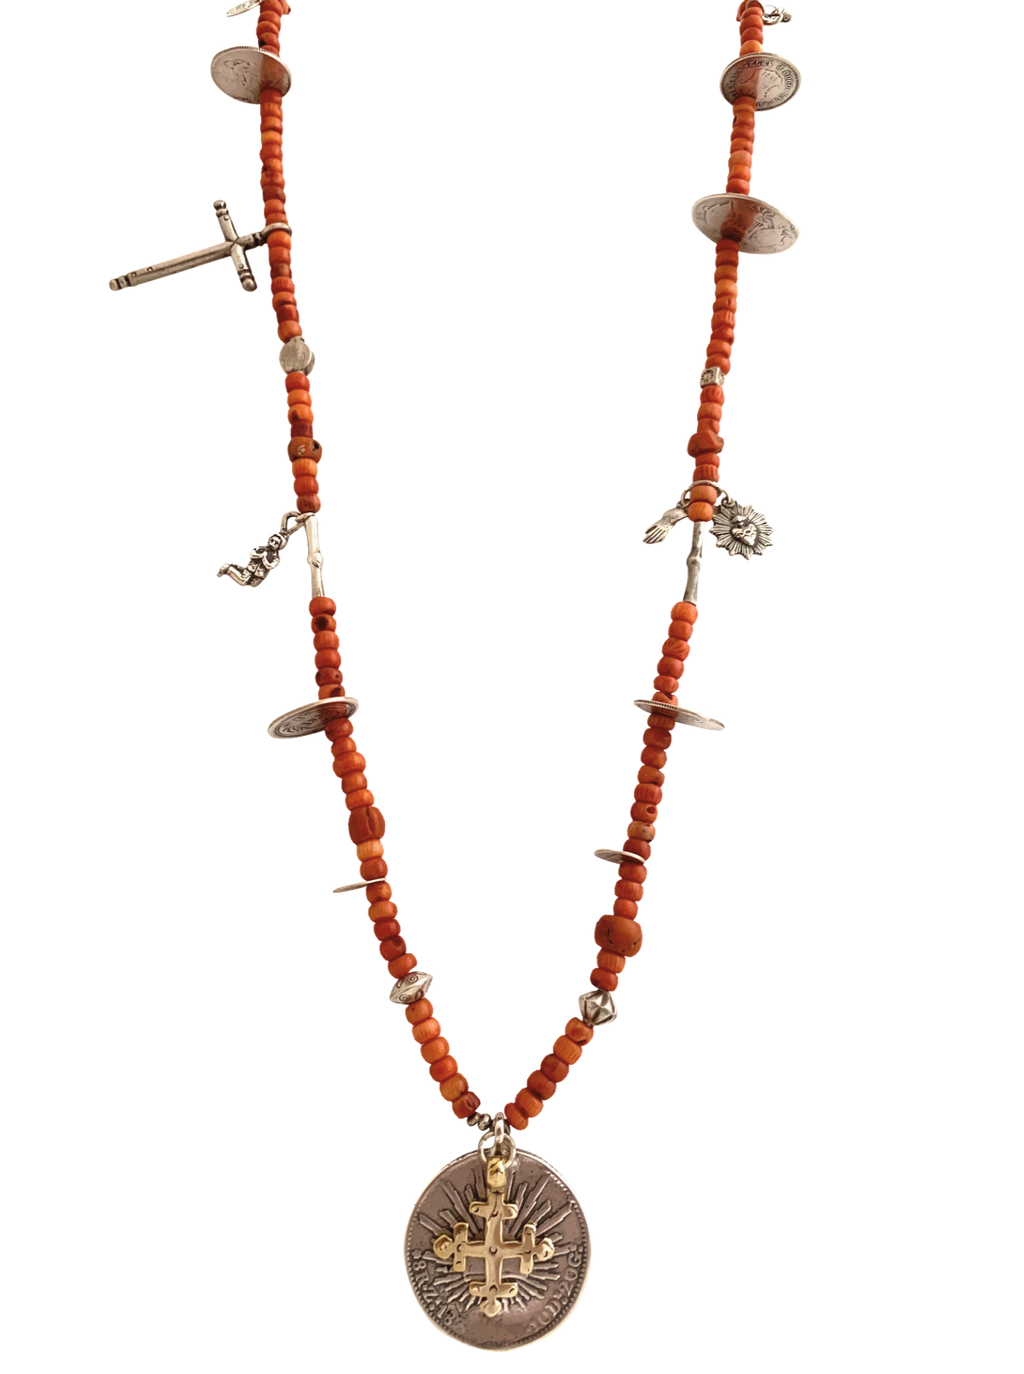 Antigua Chachal Necklace